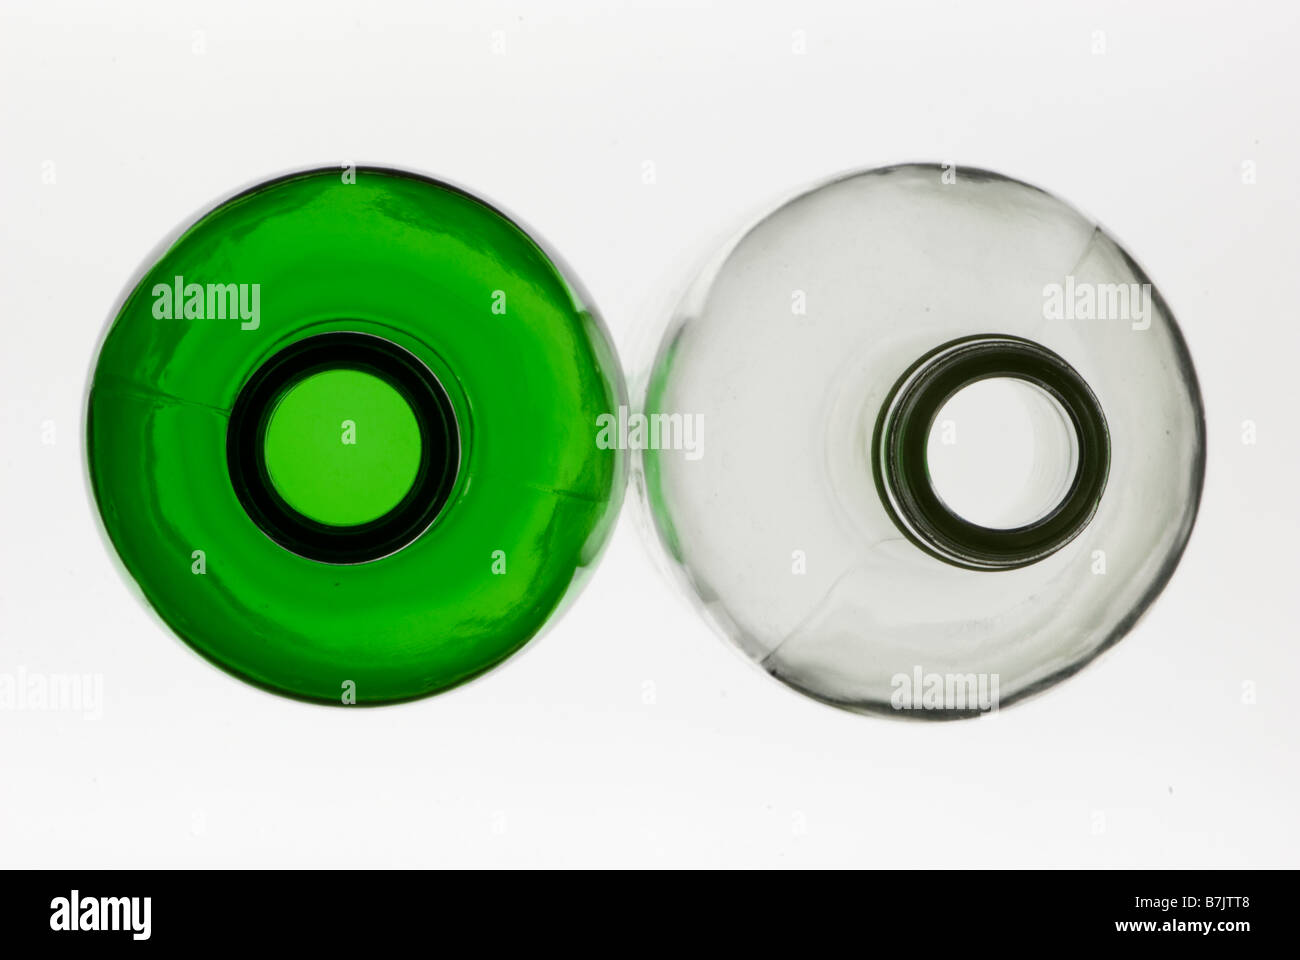 Abstract looking down on top of empty green and clear glass bottles Stock Photo